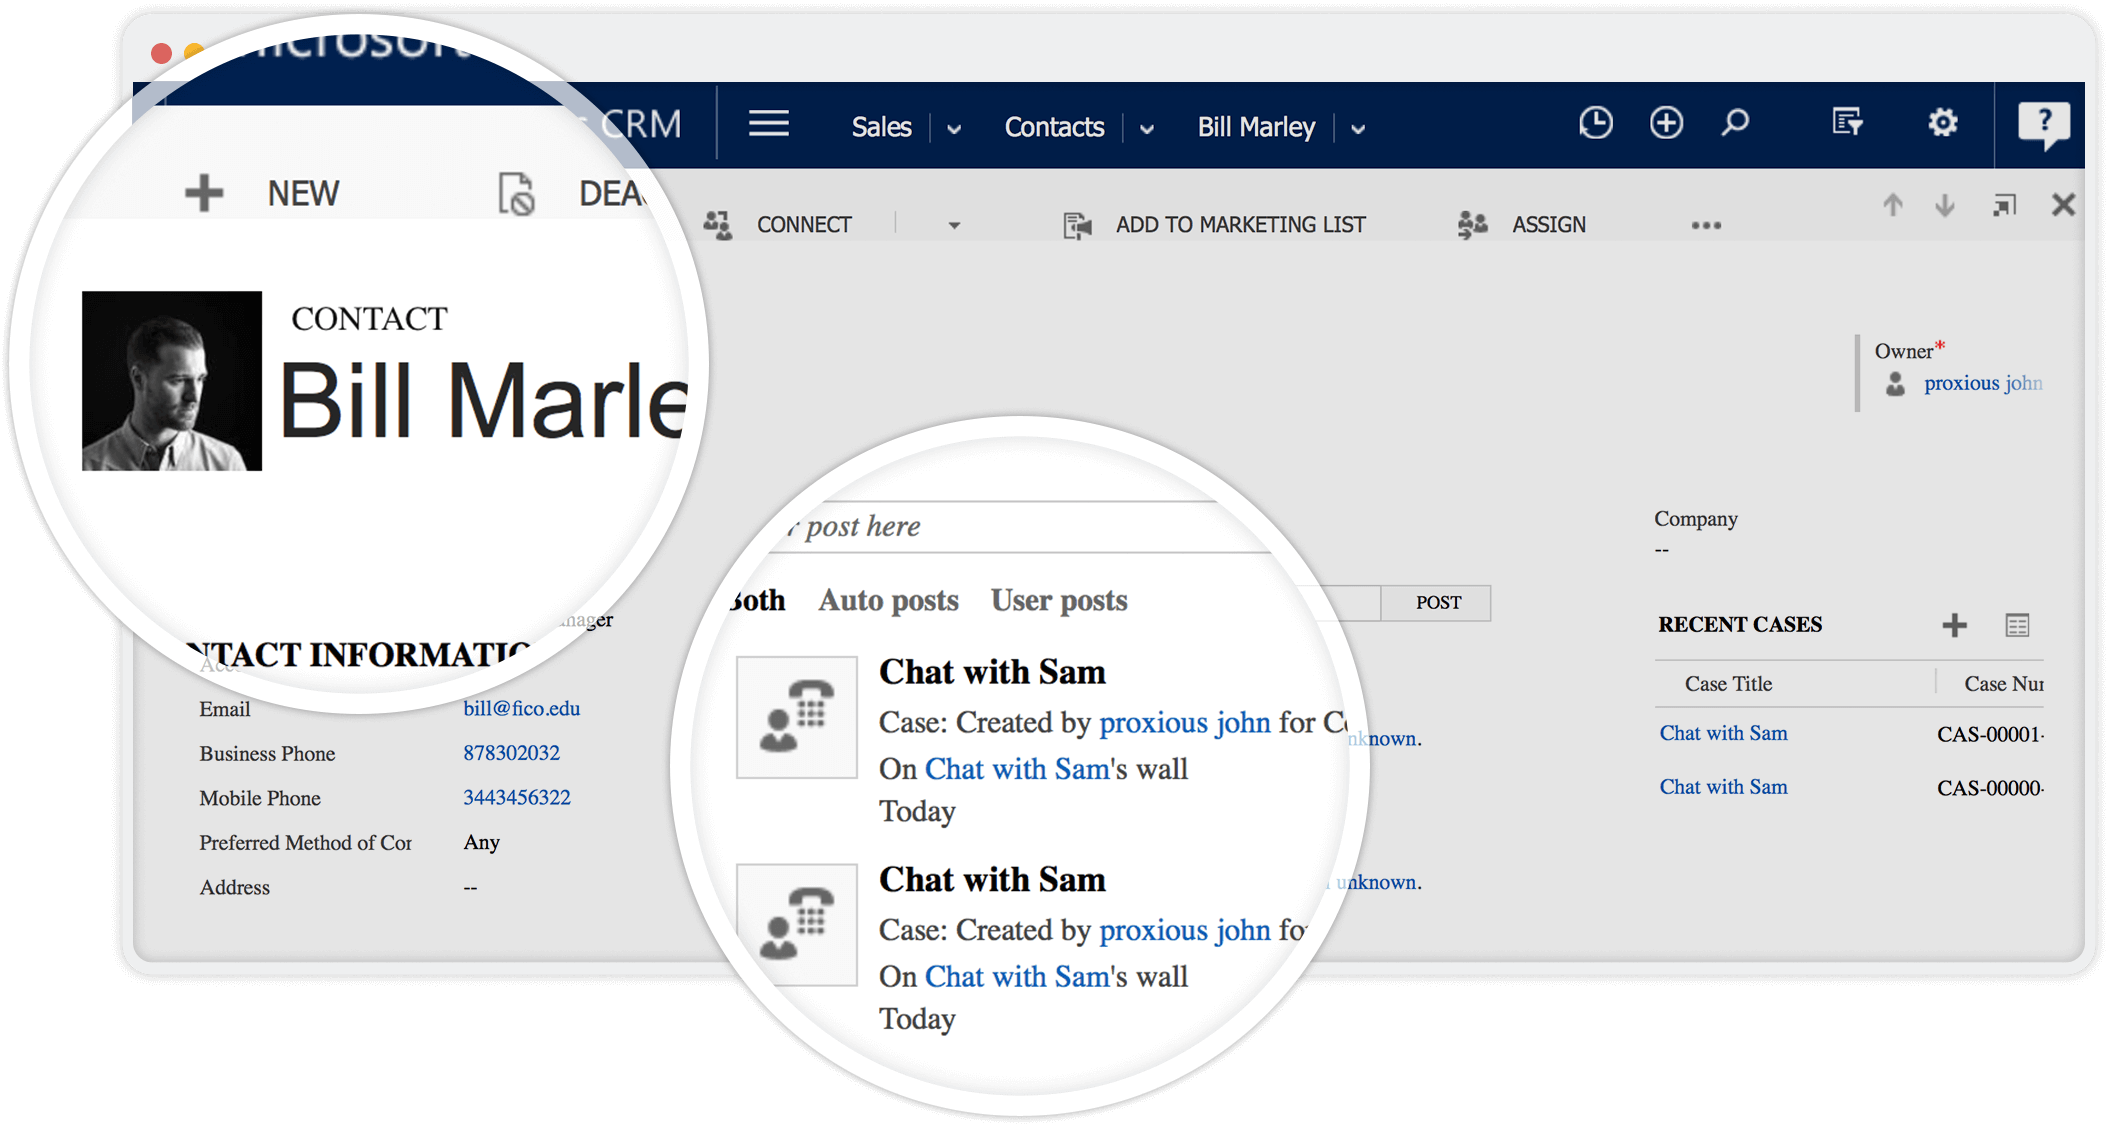 Chat transcripts on Microsoft Dynamics CRM